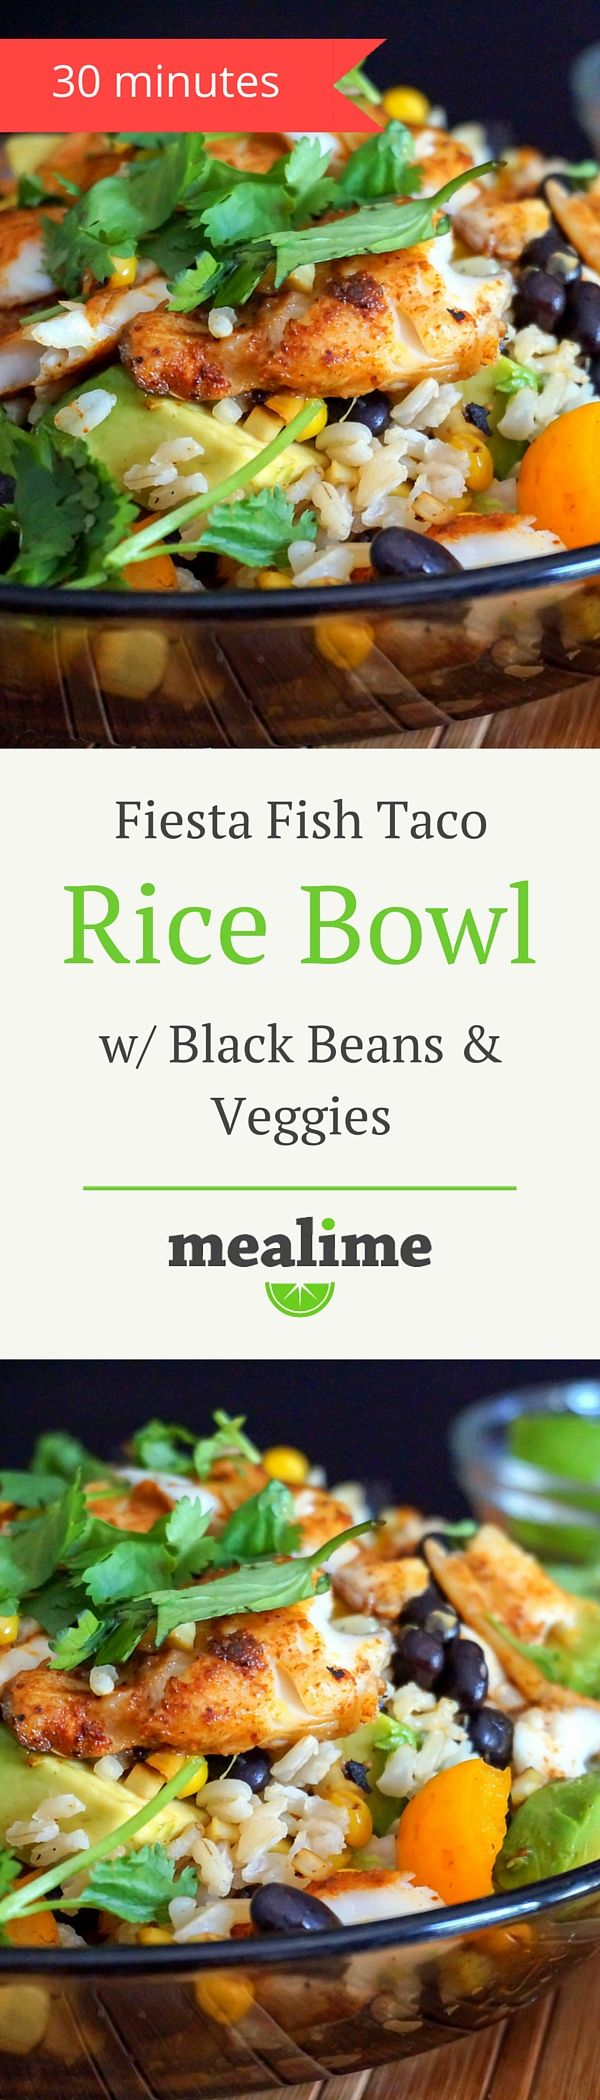 Fiesta Fish Taco Rice Bowl with Black Beans & Veggies via @mealime - a quick and healthy recipe for one or two. Flexitarian, vegetarian, pescetarian, dairy free, gluten free, peanut free, shellfish free, and tree nut free. #mealplanning